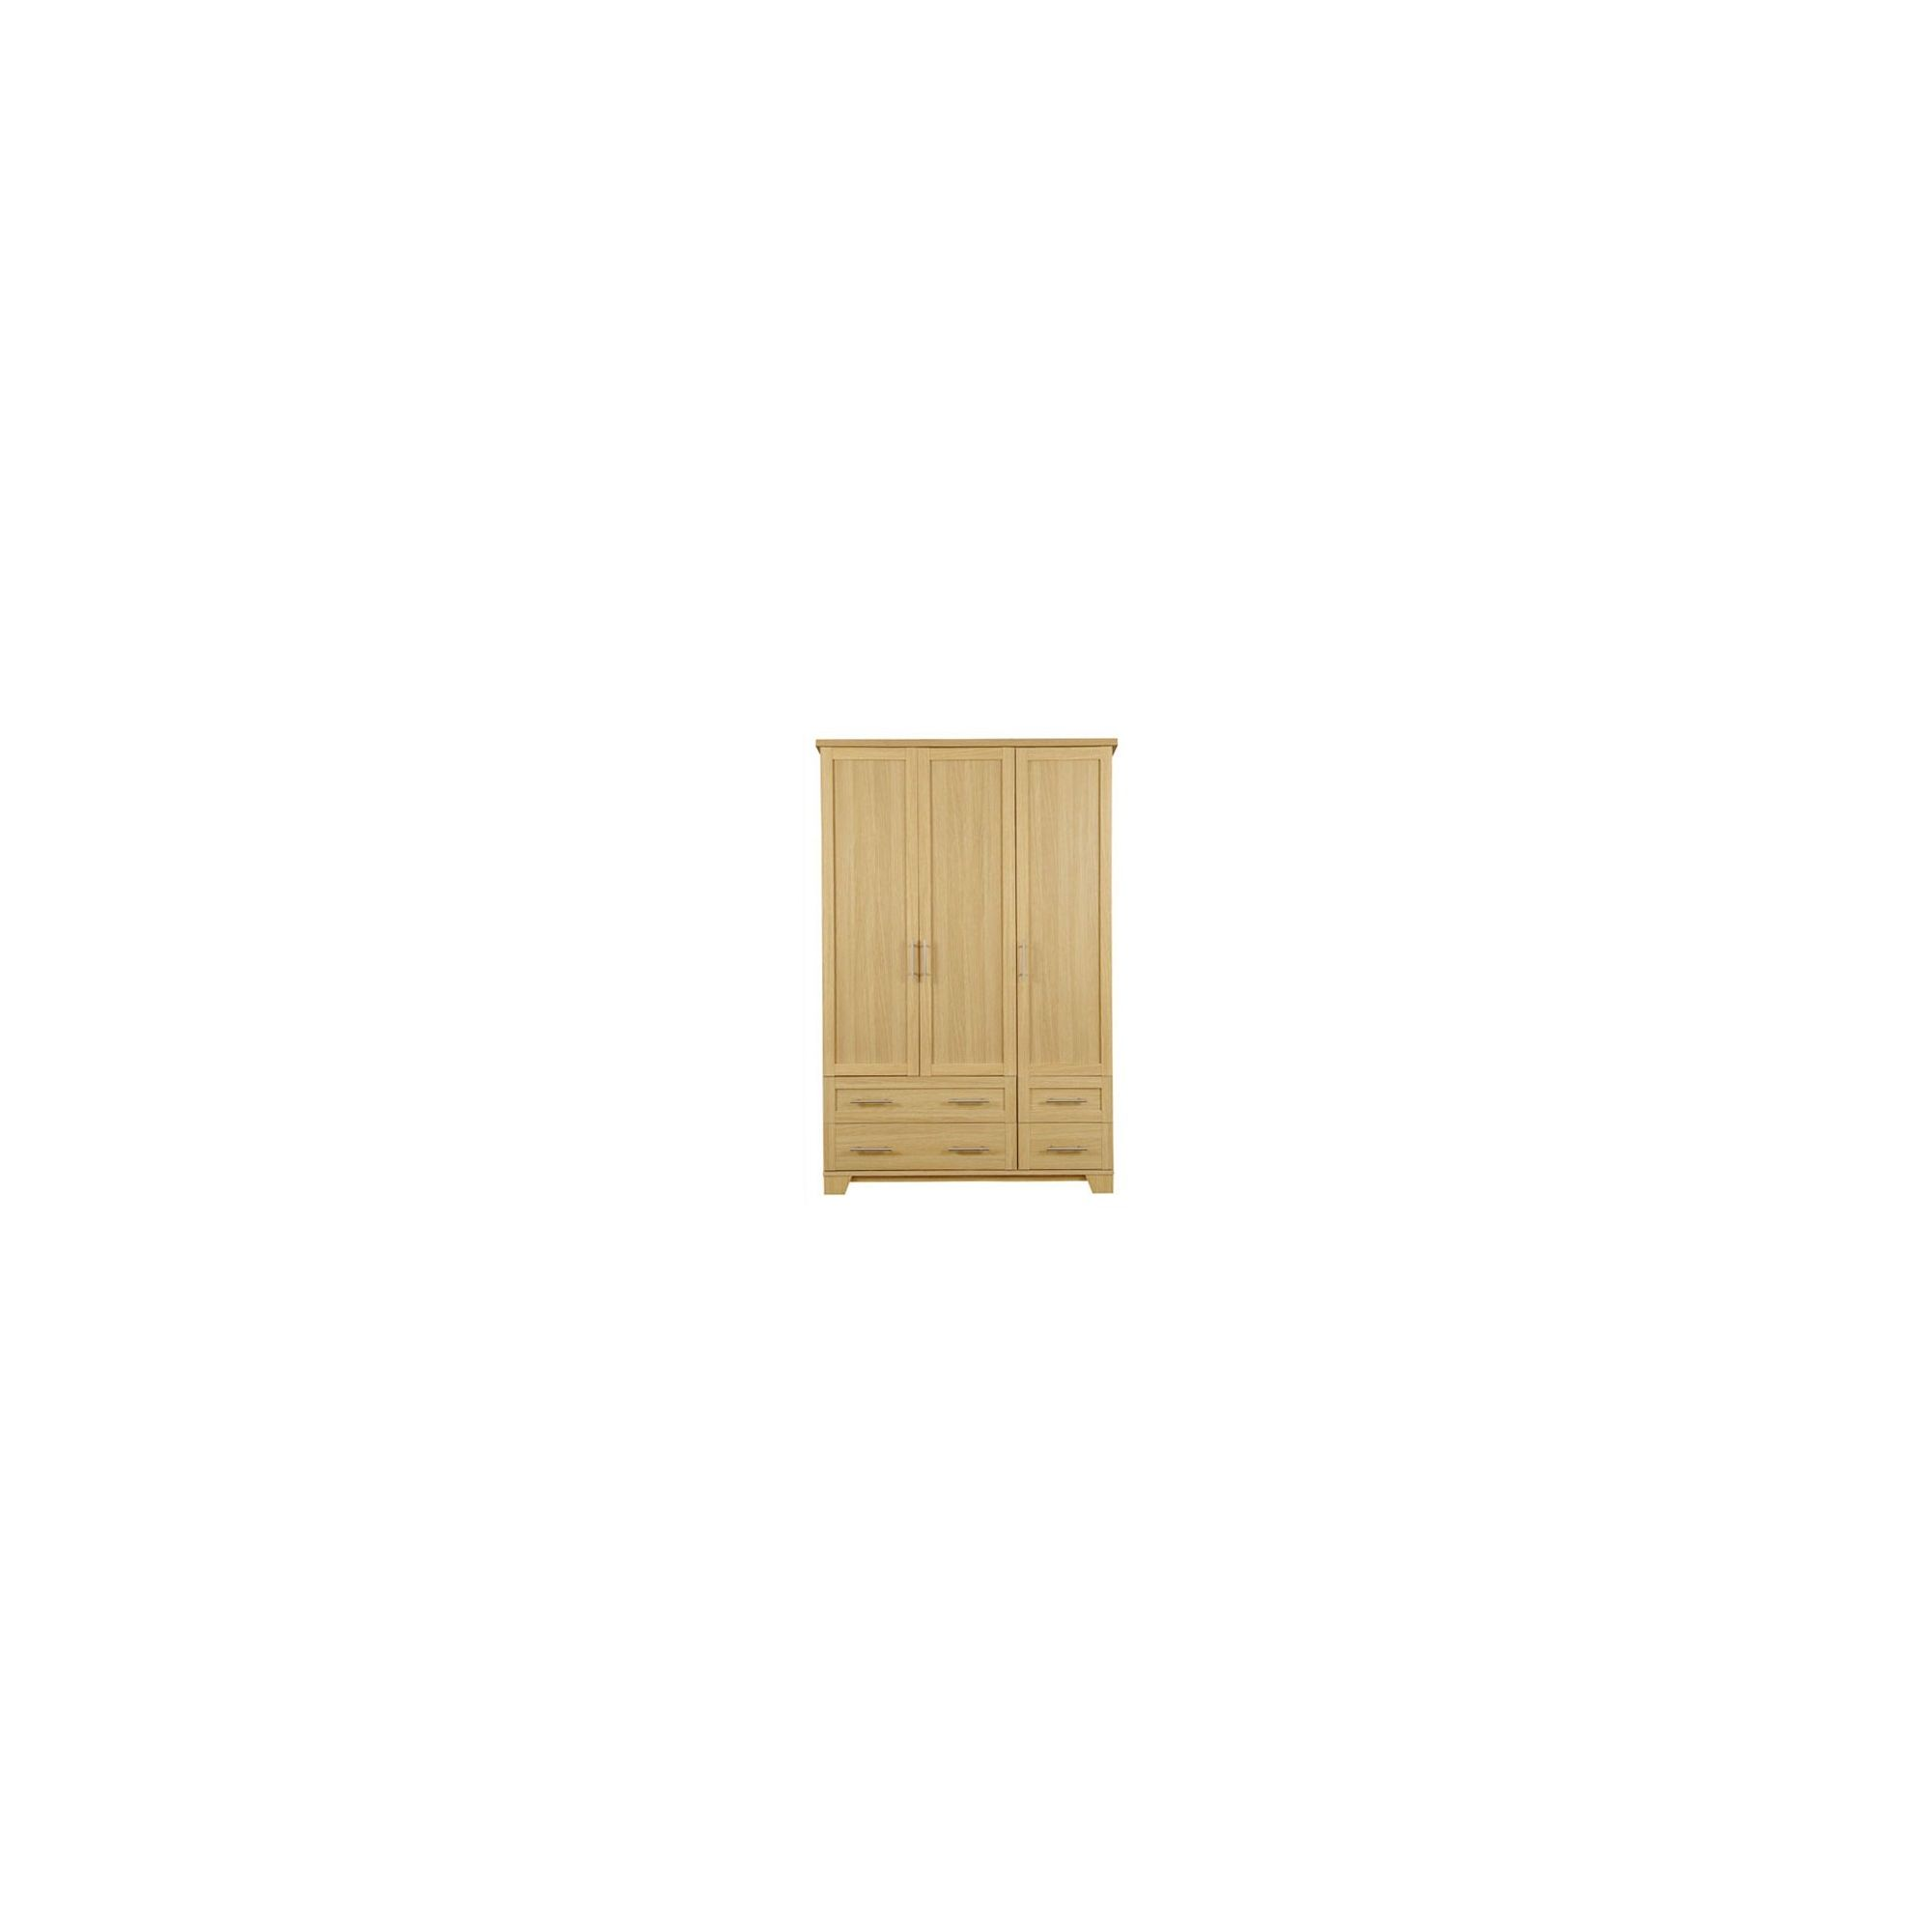 Caxton Melody 4 Drawer Wardrobe in Natural Oak at Tesco Direct